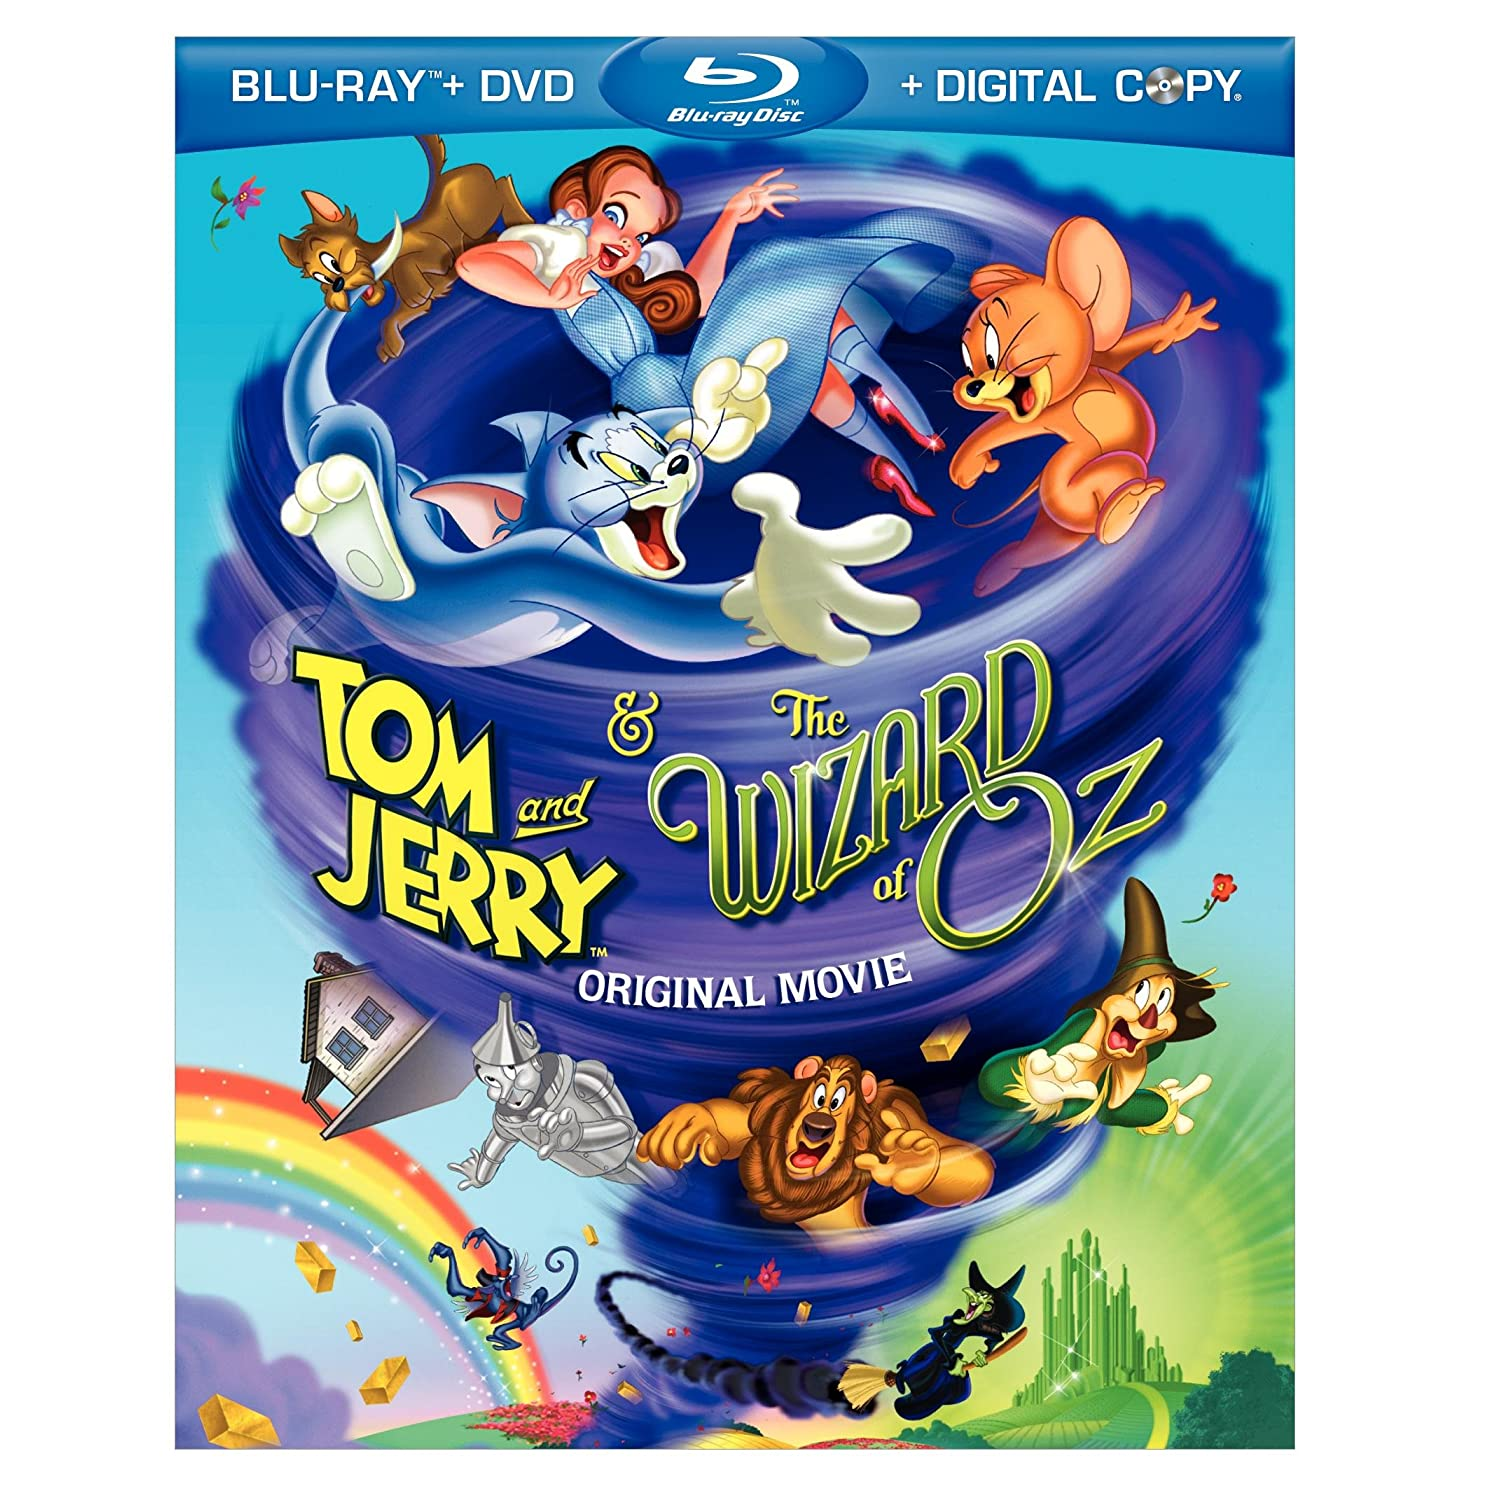 Tom and Jerry and Wizard of Oz